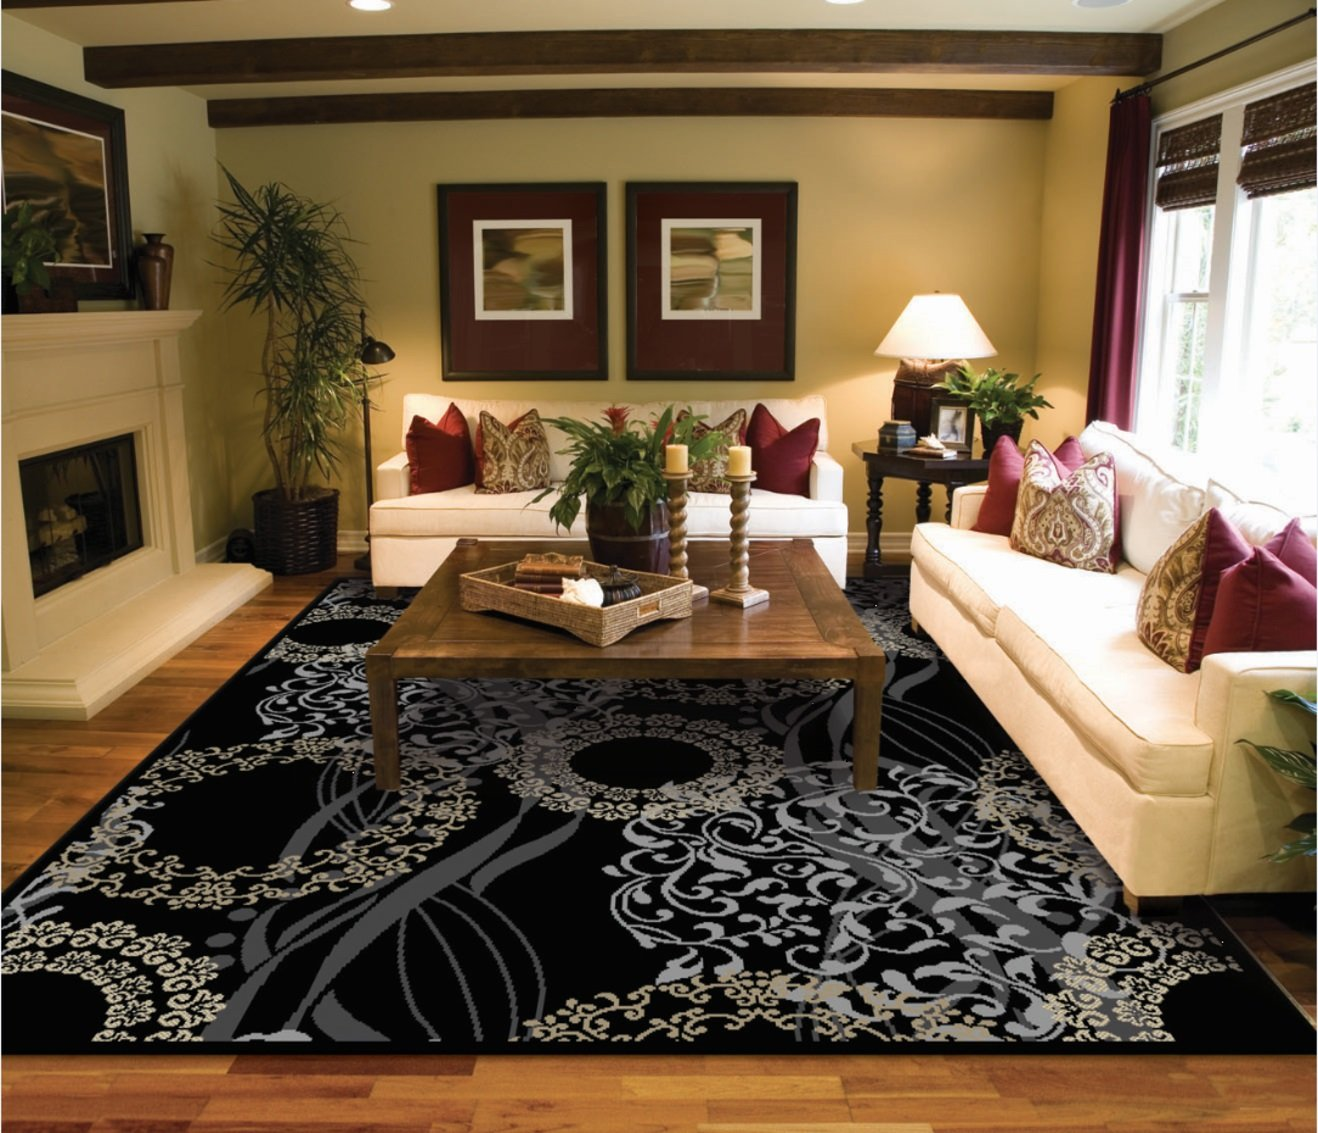 Amazon Luxutry Modern Rugs For Living Dining Room Black Cream Beige Rug Large 8x11 Contemporary 8x10 Area Clearance Kitchen